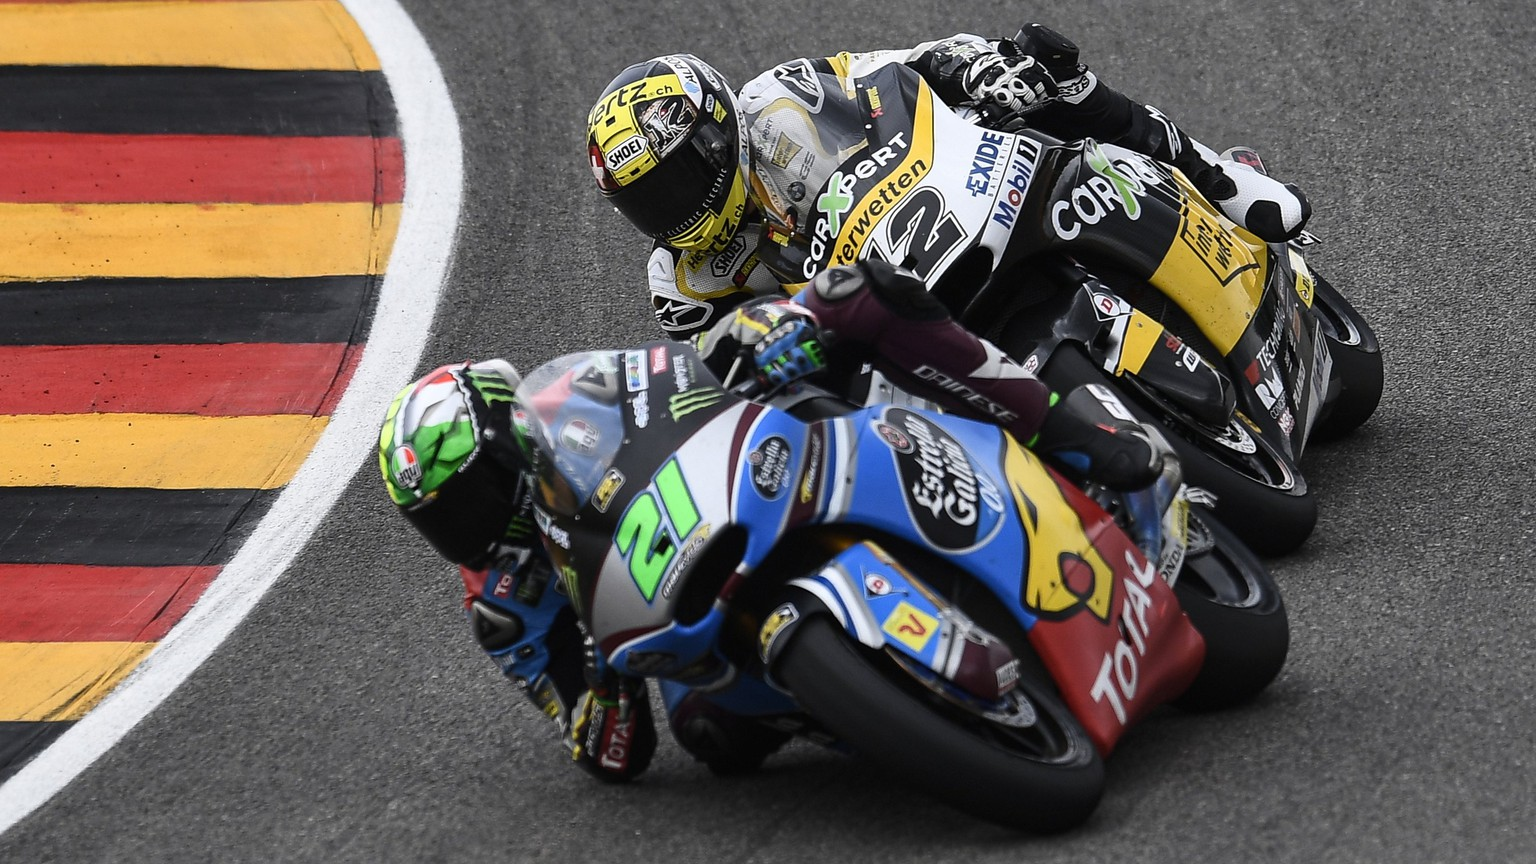 epa06061318 Italian Moto2 rider Franco Morbidelli of EG 0,0 Marc VDS (L) and Swiss Moto2 rider Thomas Luethi of the CarXpert Interwetten team in action during the the Moto2 race of the the motorcycling Grand Prix of Germany at the Sachsenring racing circuit in Hohenstein-Ernstthal, Germany, 02 July 2017.  EPA/FILIP SINGER